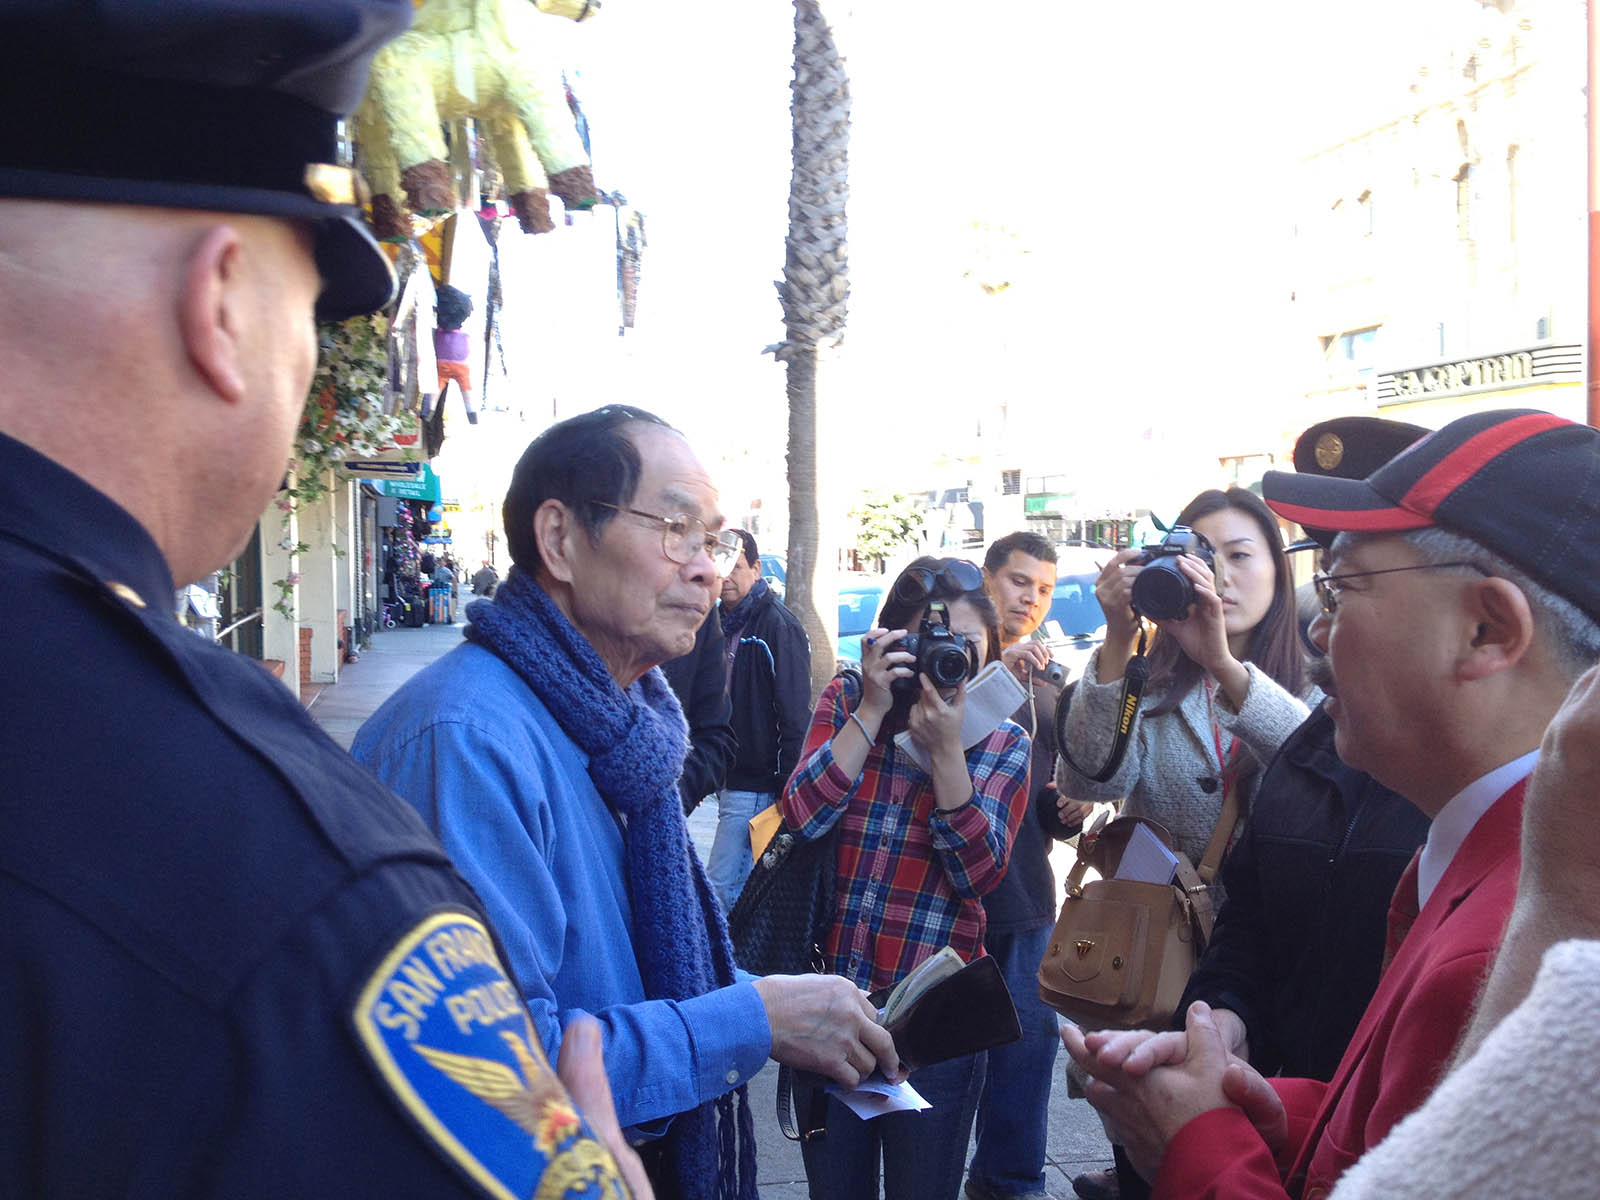 Mixed feelings in SF Mission Chinese community about Ed Lee's legacy